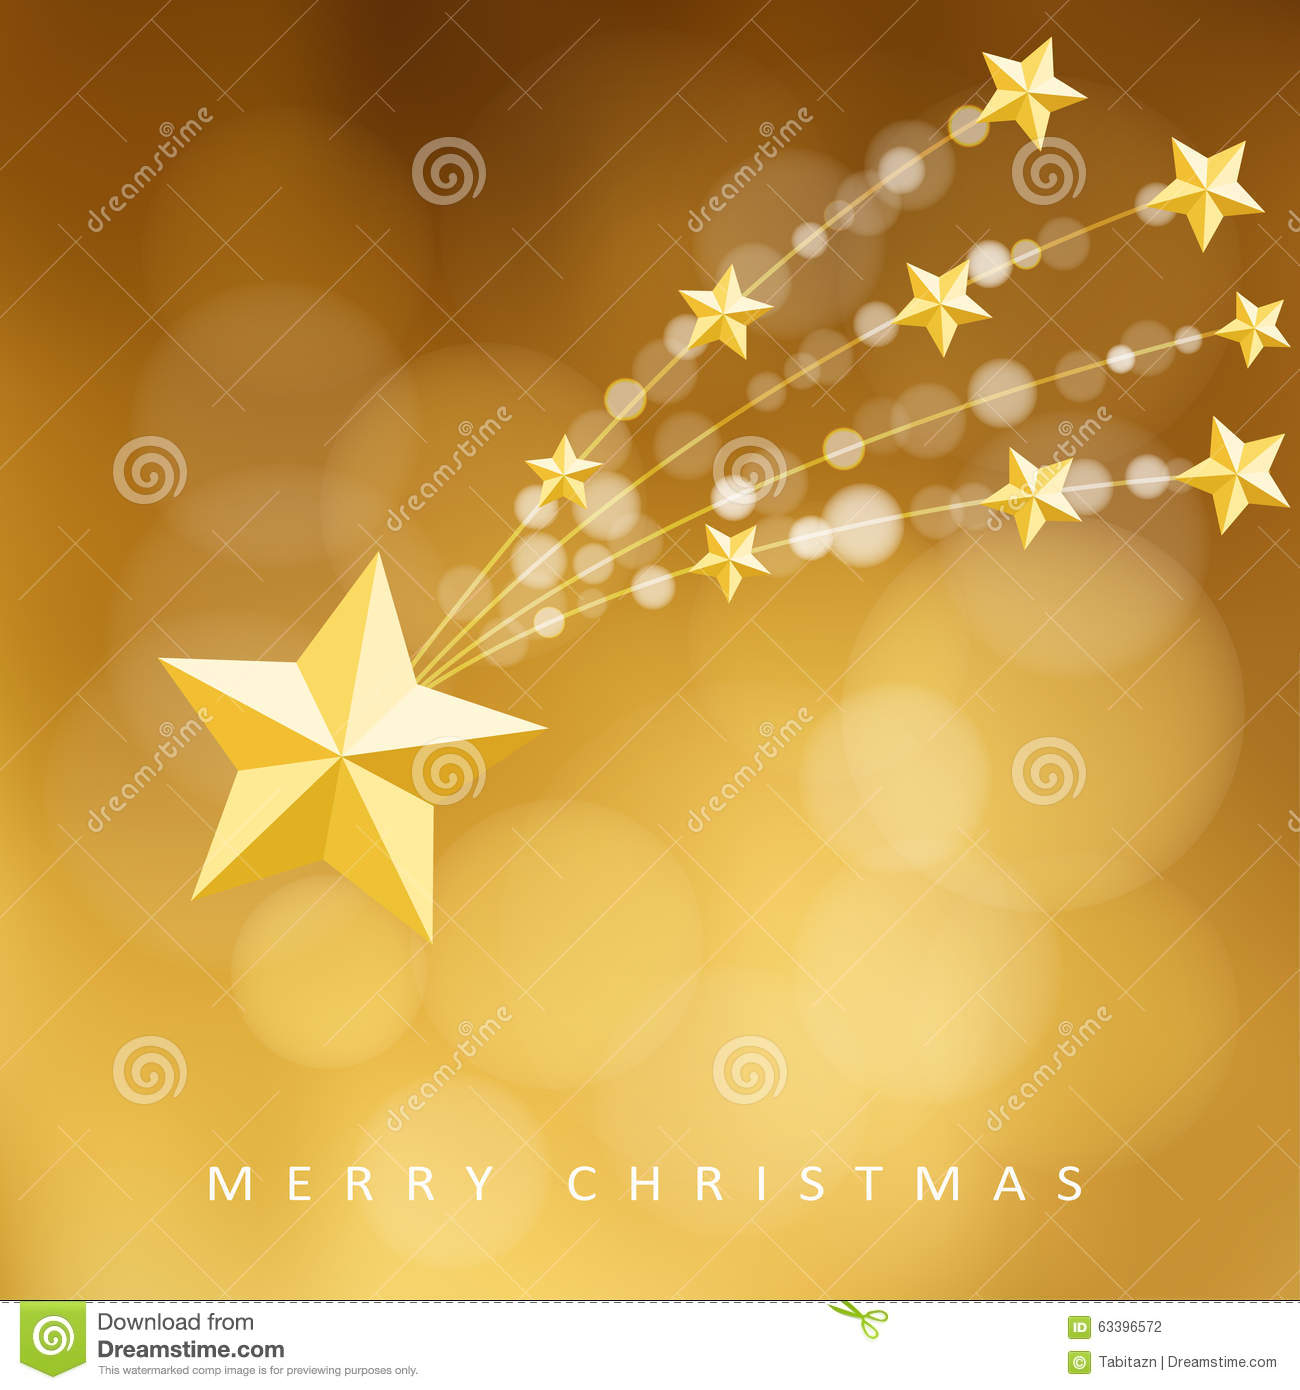 Modern Golden Christmas Greeting Card Invitation With